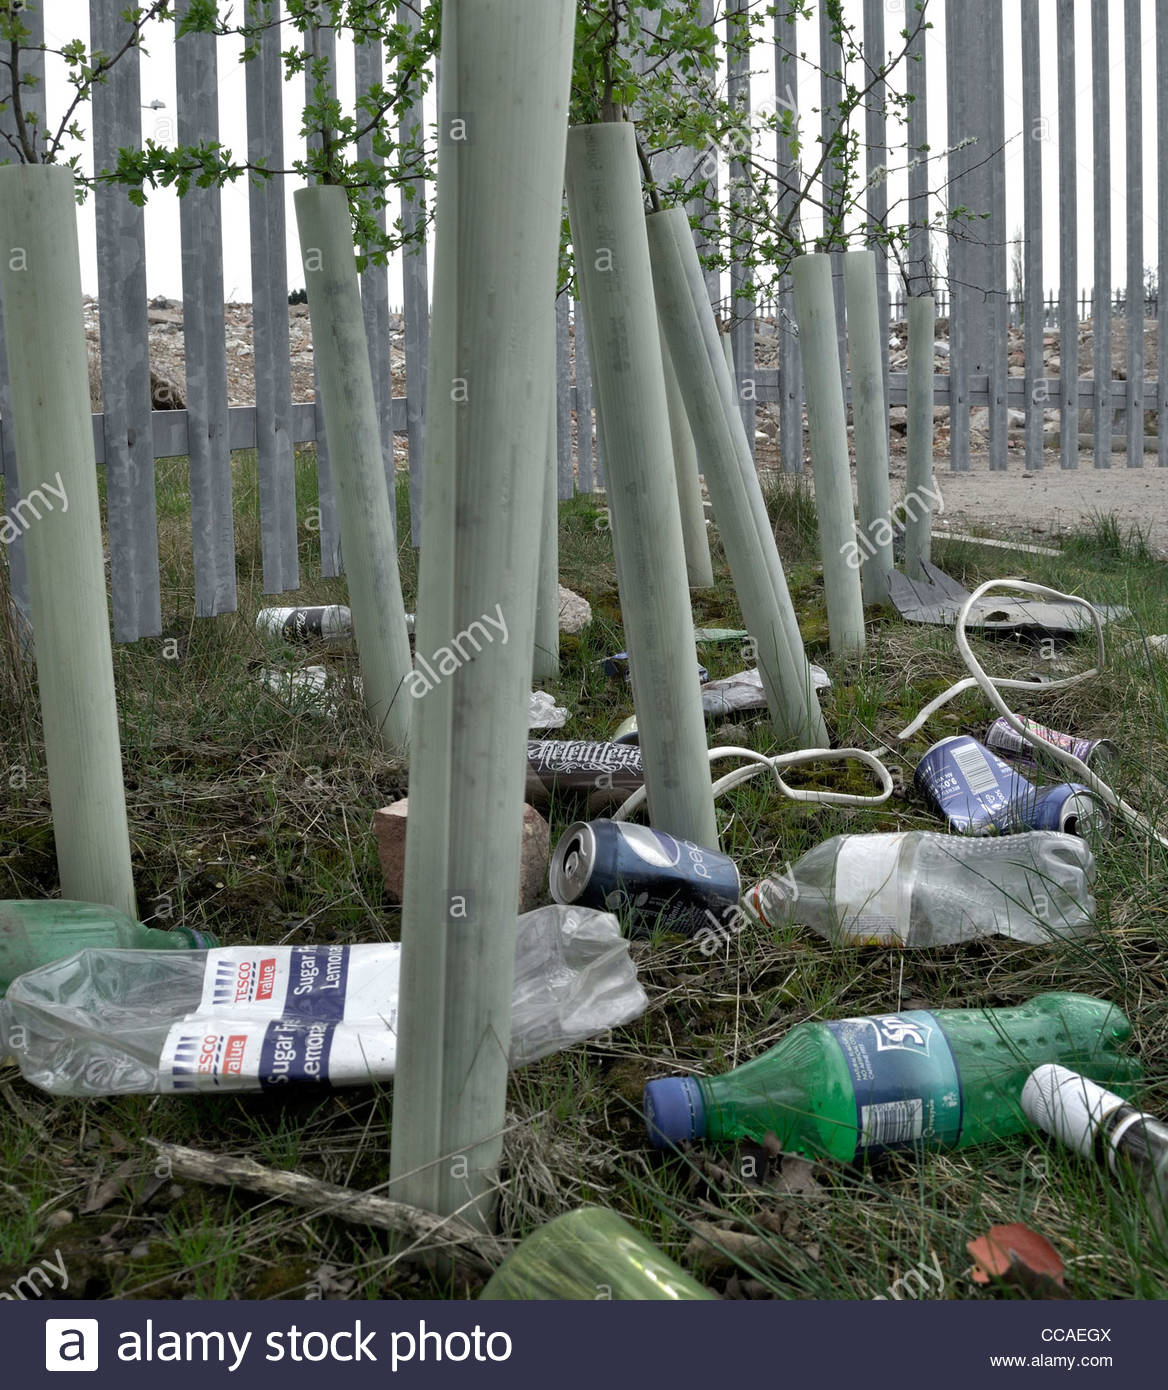 Litter strewn among newly planted saplings by side of road. Photographed in Rugely, Staffordshire, UK - Stock Image